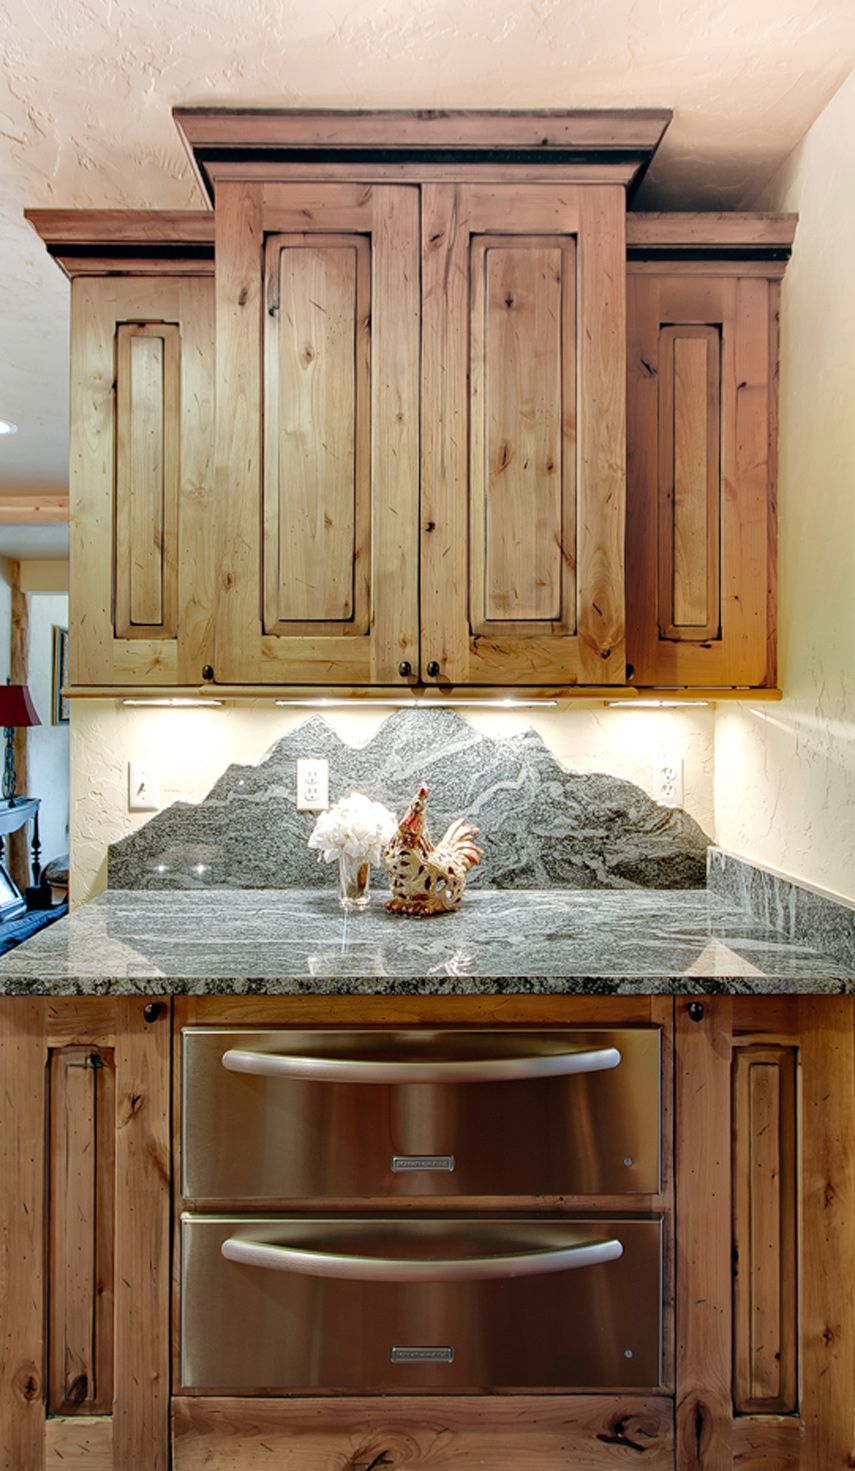 Best Kitchen Gallery: The Color Of The Cabi S And The Mountainous Back Splash Home of Rustic Alder Kitchen Cabinets on rachelxblog.com